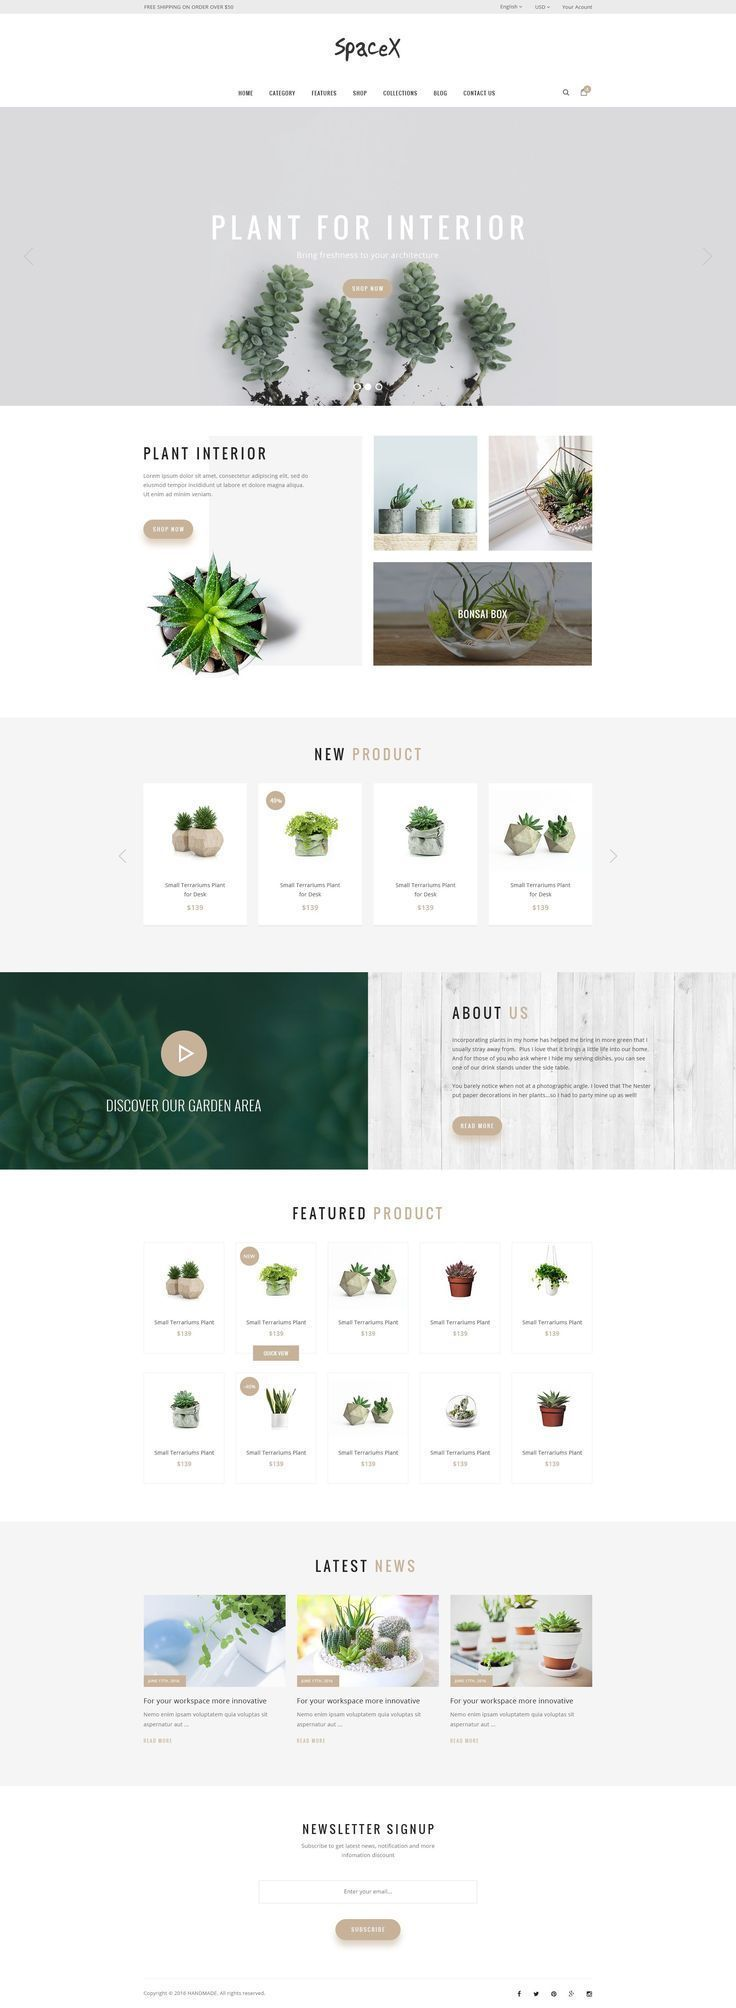 Website Design Inspiration And Ideas For Bloggers And Ecommerce Shops Website Designs Web Simple Website Design Website Design Layout Shopify Website Design